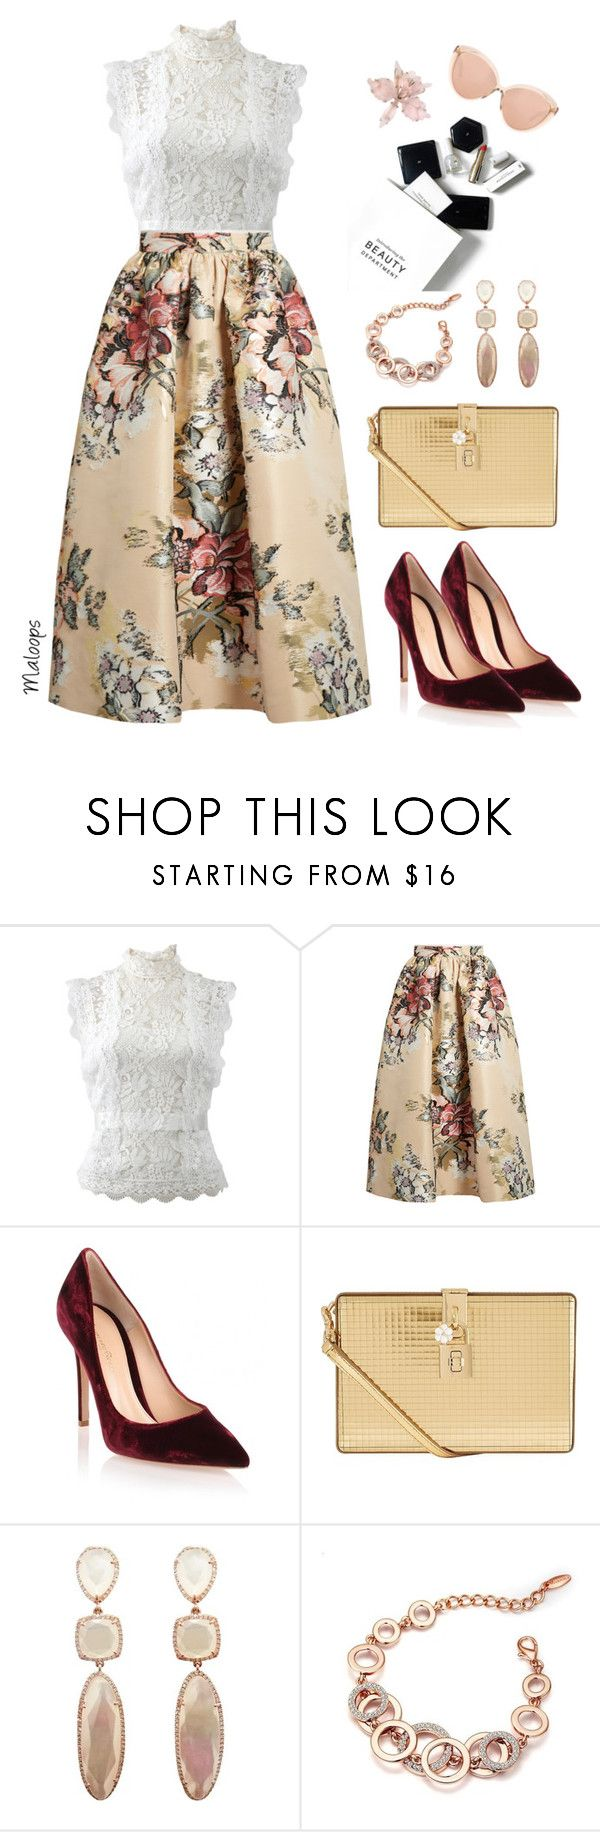 """~Stop and smell the roses~"" by maloops ❤ liked on Polyvore featuring Oscar de la Renta, Fendi, Gianvito Rossi, H&M, Dolce&Gabbana, Linda Farrow, vintage, chic, VintageInspired and vintageflorals"